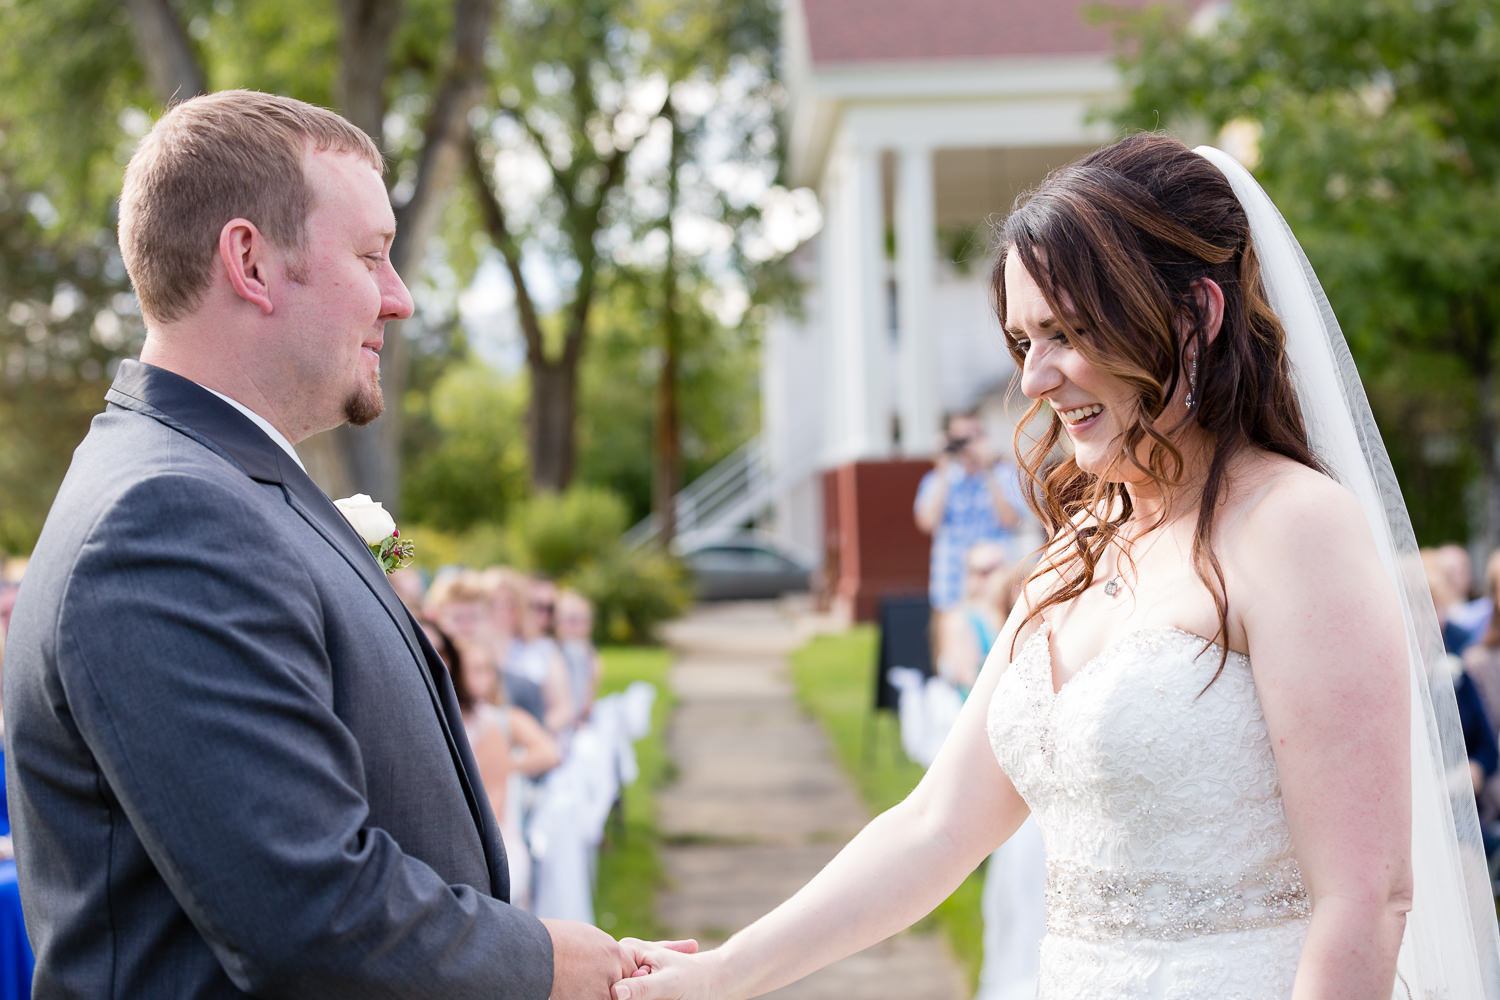 heritage-hall-missoula-montana-bride-groom-laugh-during-ceremony.jpg